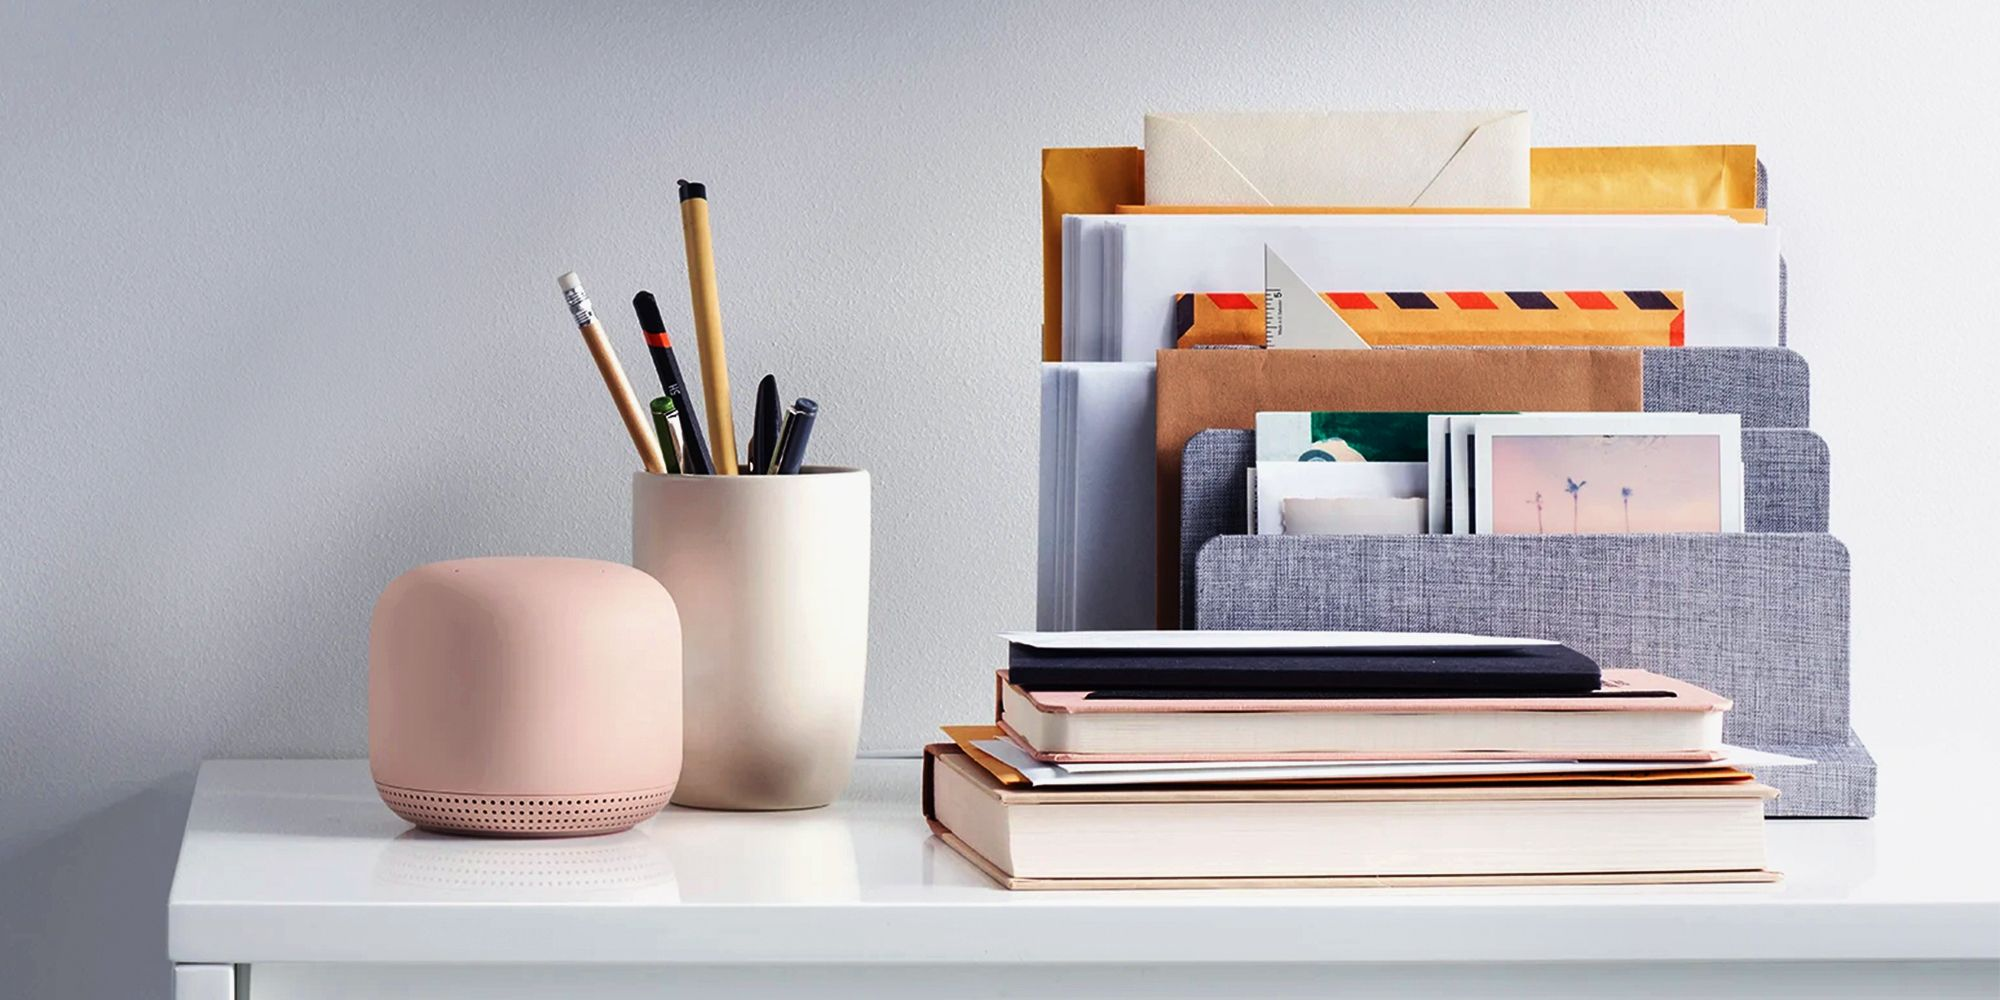 7 Finest Wi-fi Routers to Purchase in 2020